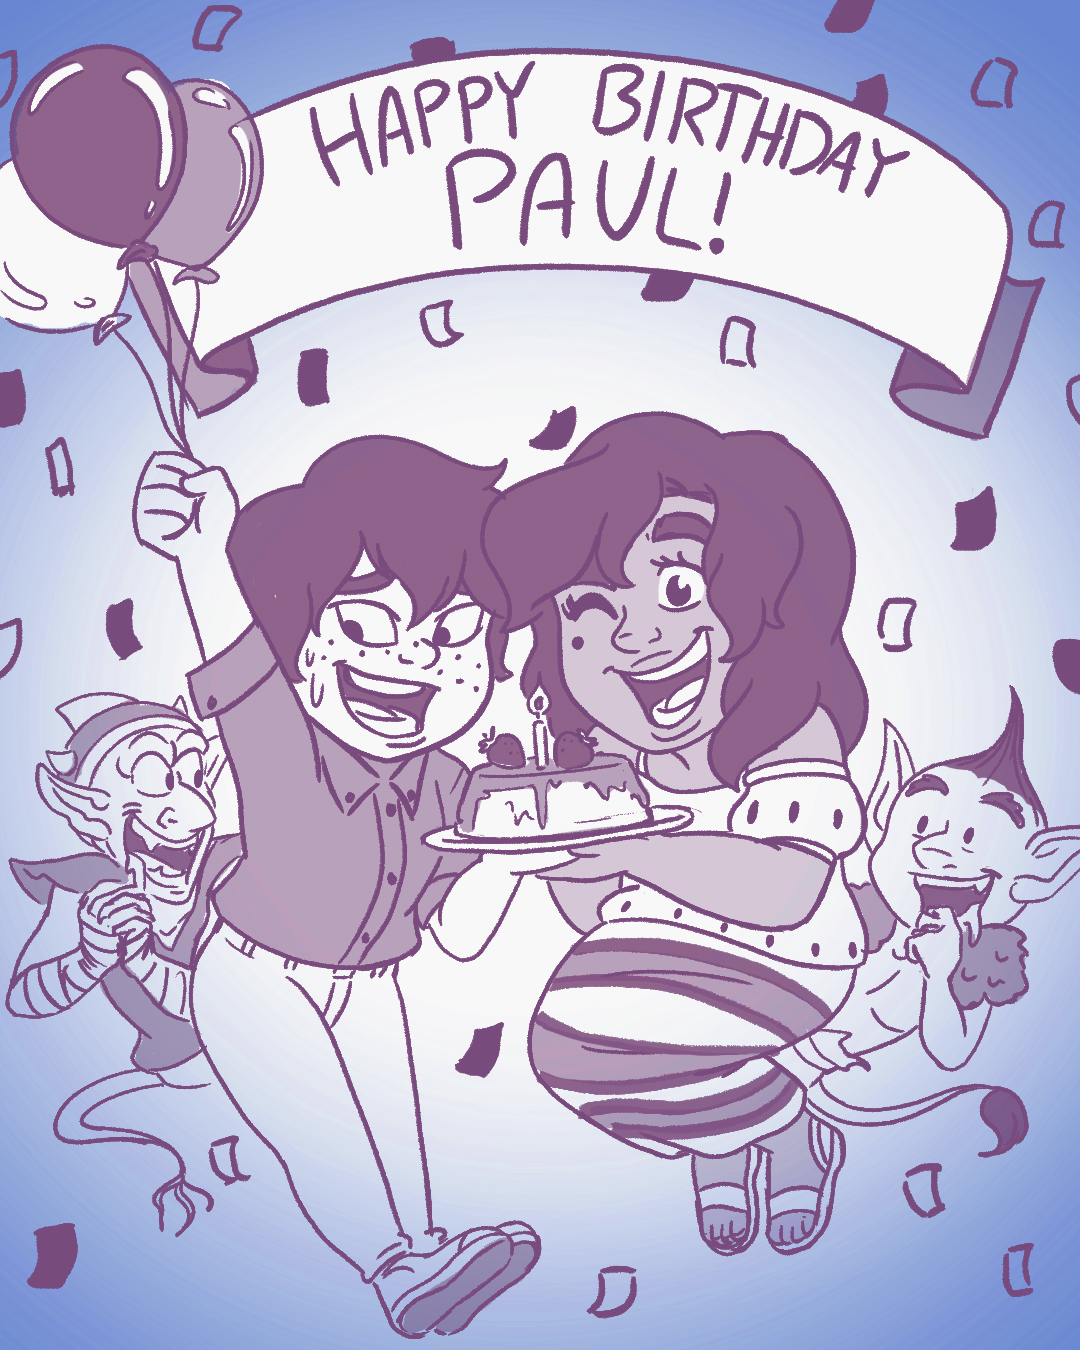 A quick birthday gift for Paul Montgomery, one of the two of the great authors who wrote the book!